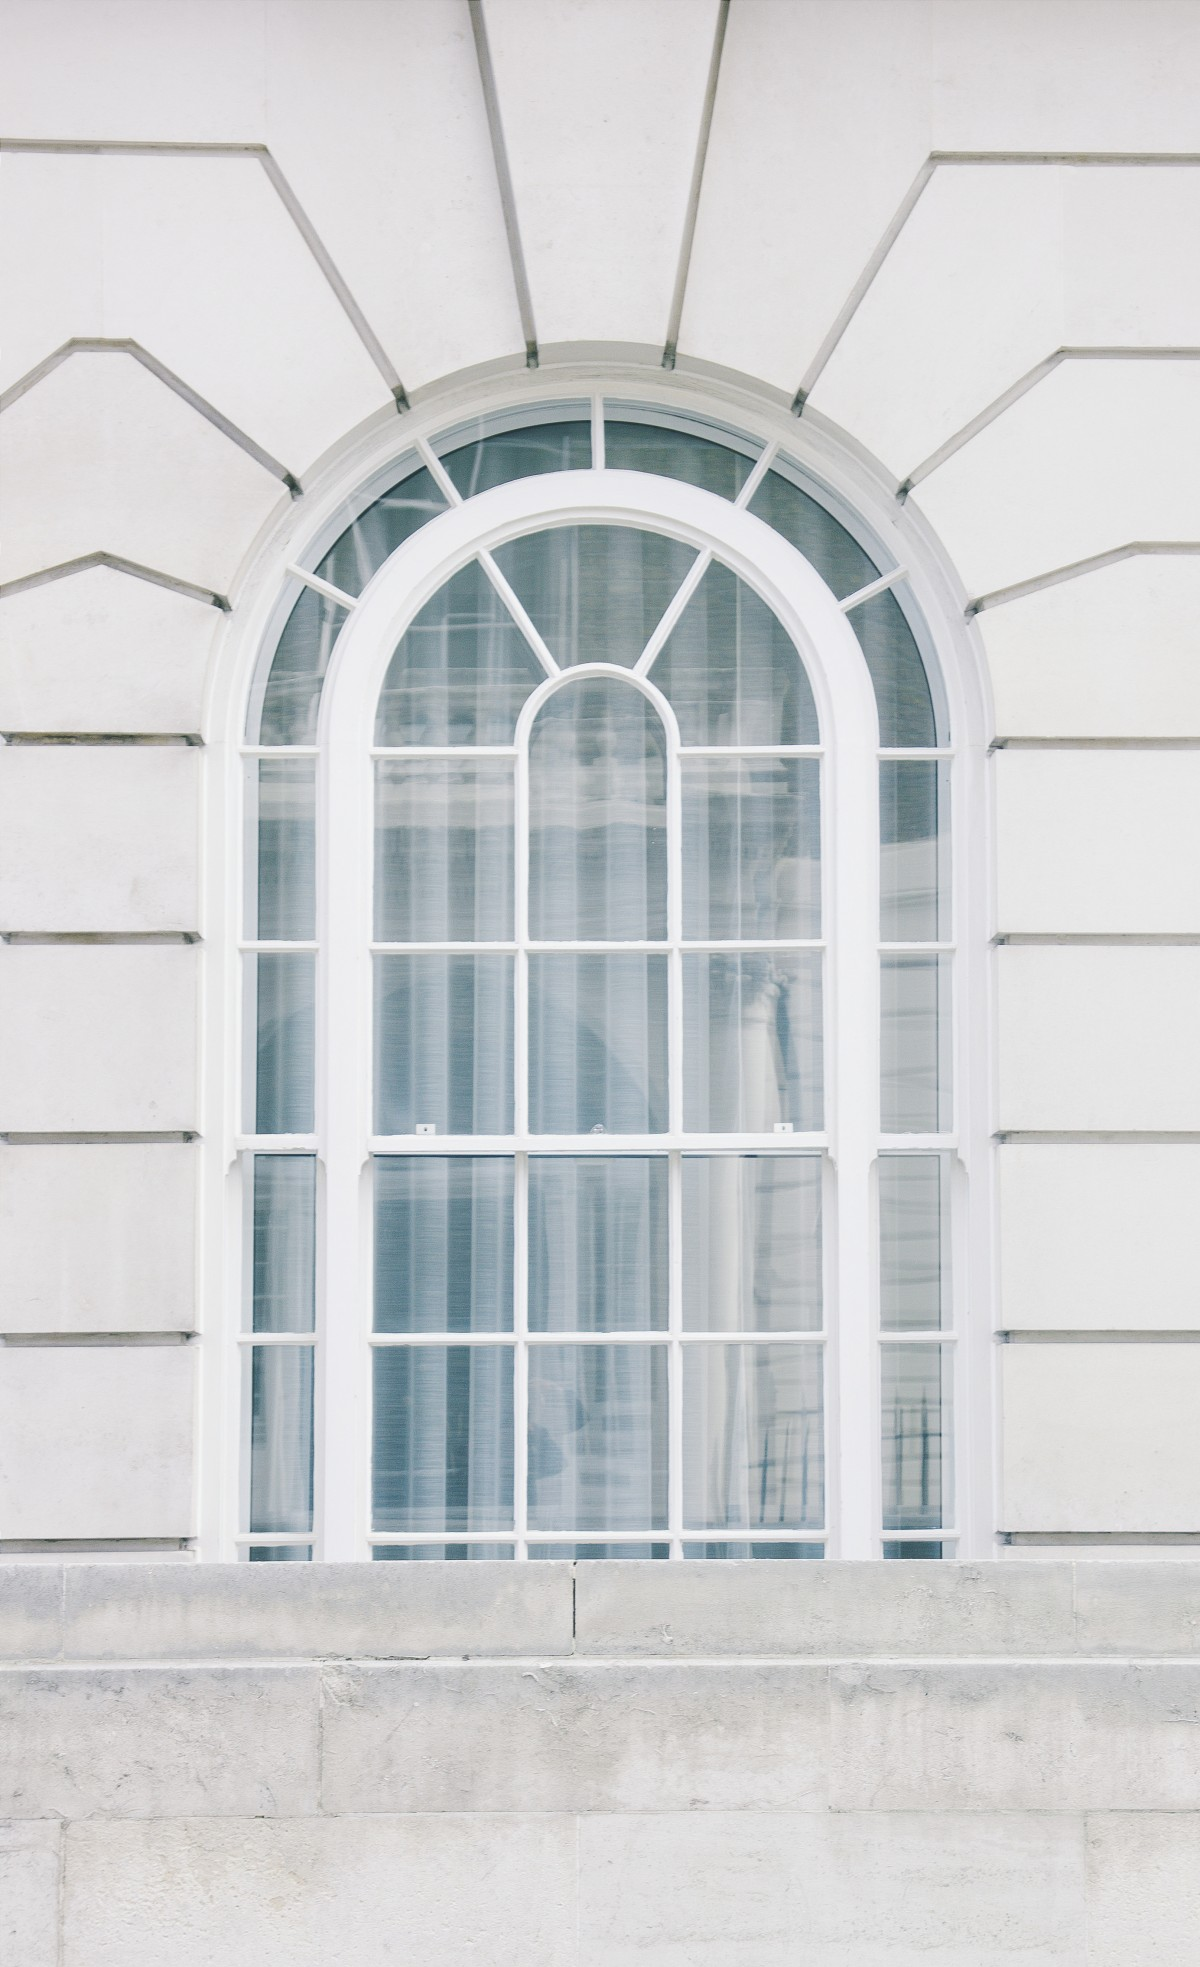 Free Images Architecture White Glass Arch Facade